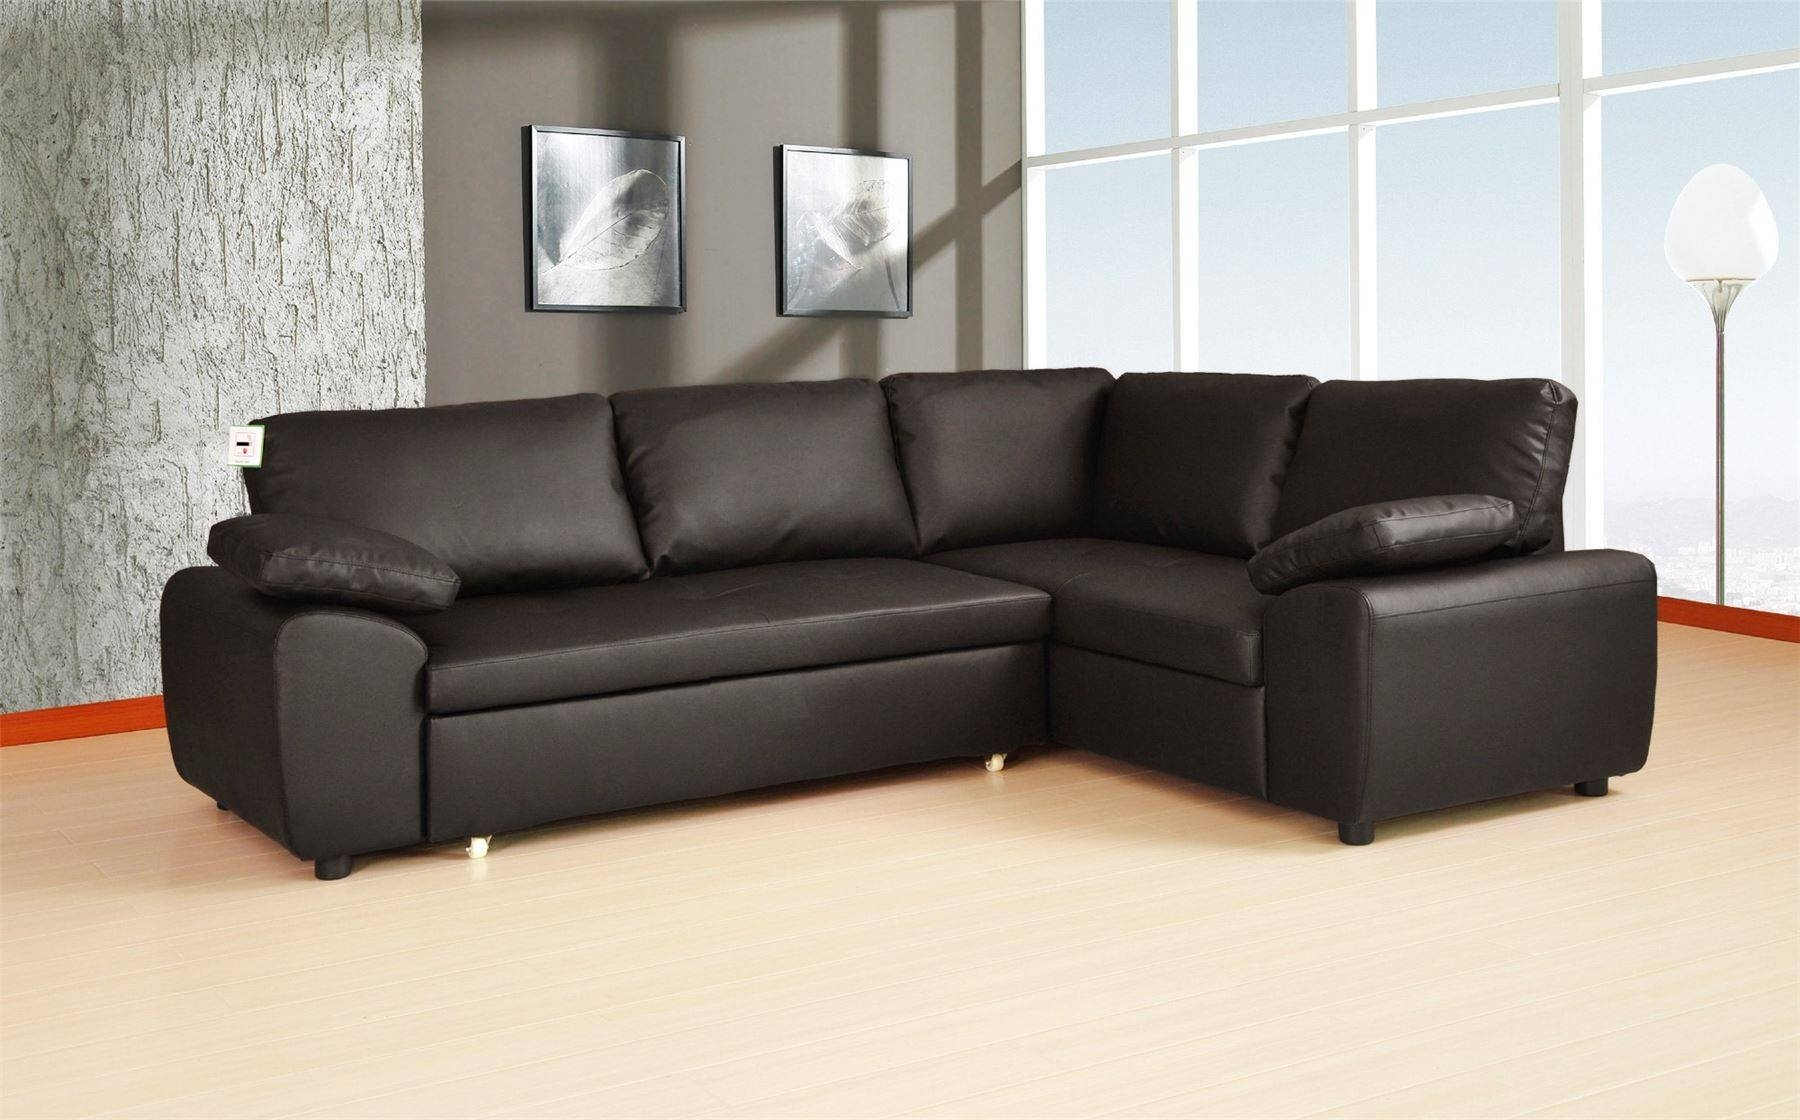 Decorate Your Home With Black Leather Corner Sofa in Black Leather Corner Sofas (Image 7 of 15)